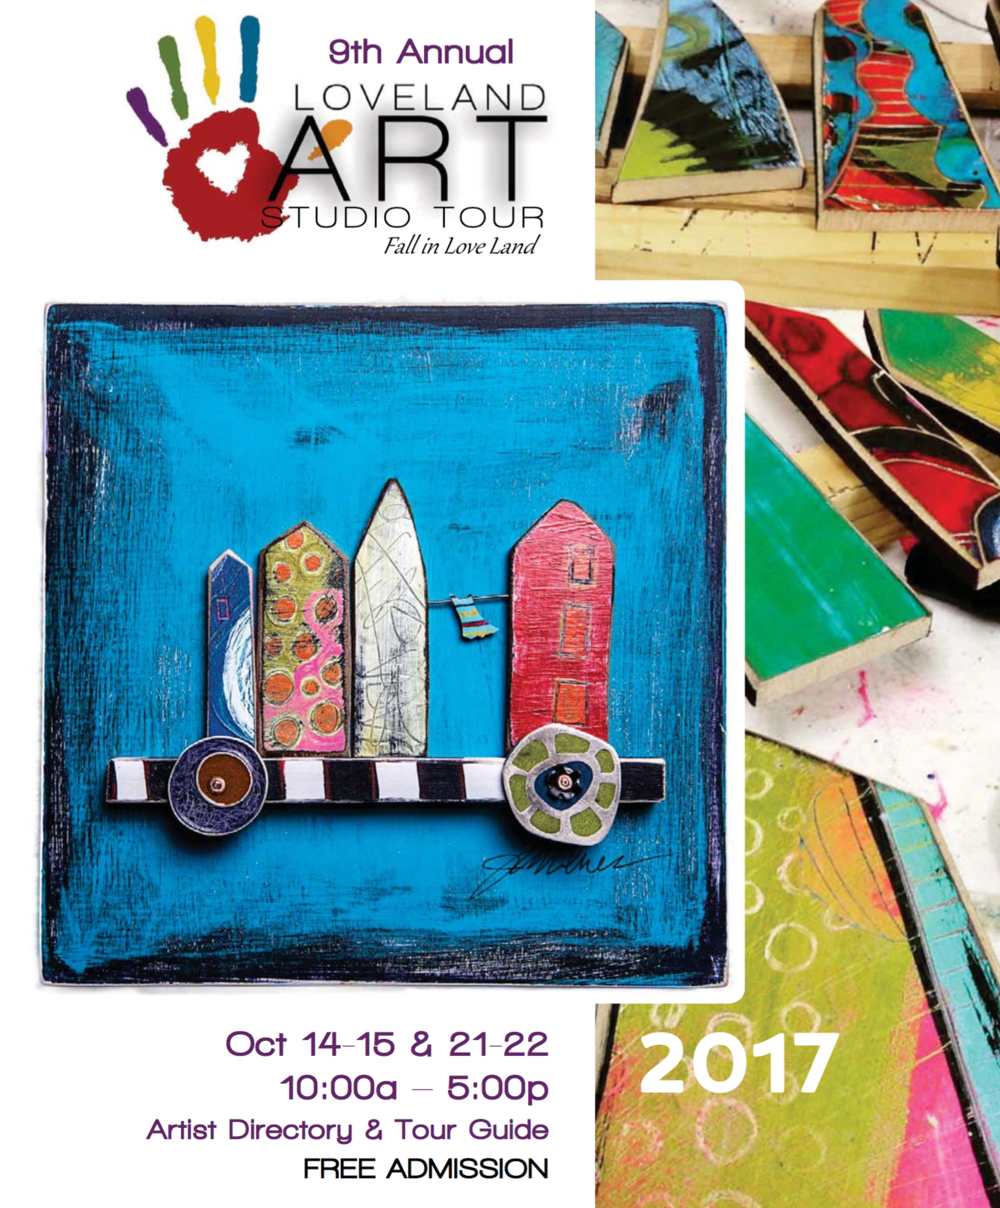 Join me in my studio at    Artworks Loveland    during the Loveland Art Studio Tour to see new large paintings in progress as well as a new series of works on paper and series of small paintings. Find out more info at    Loveland Art Studio Tour